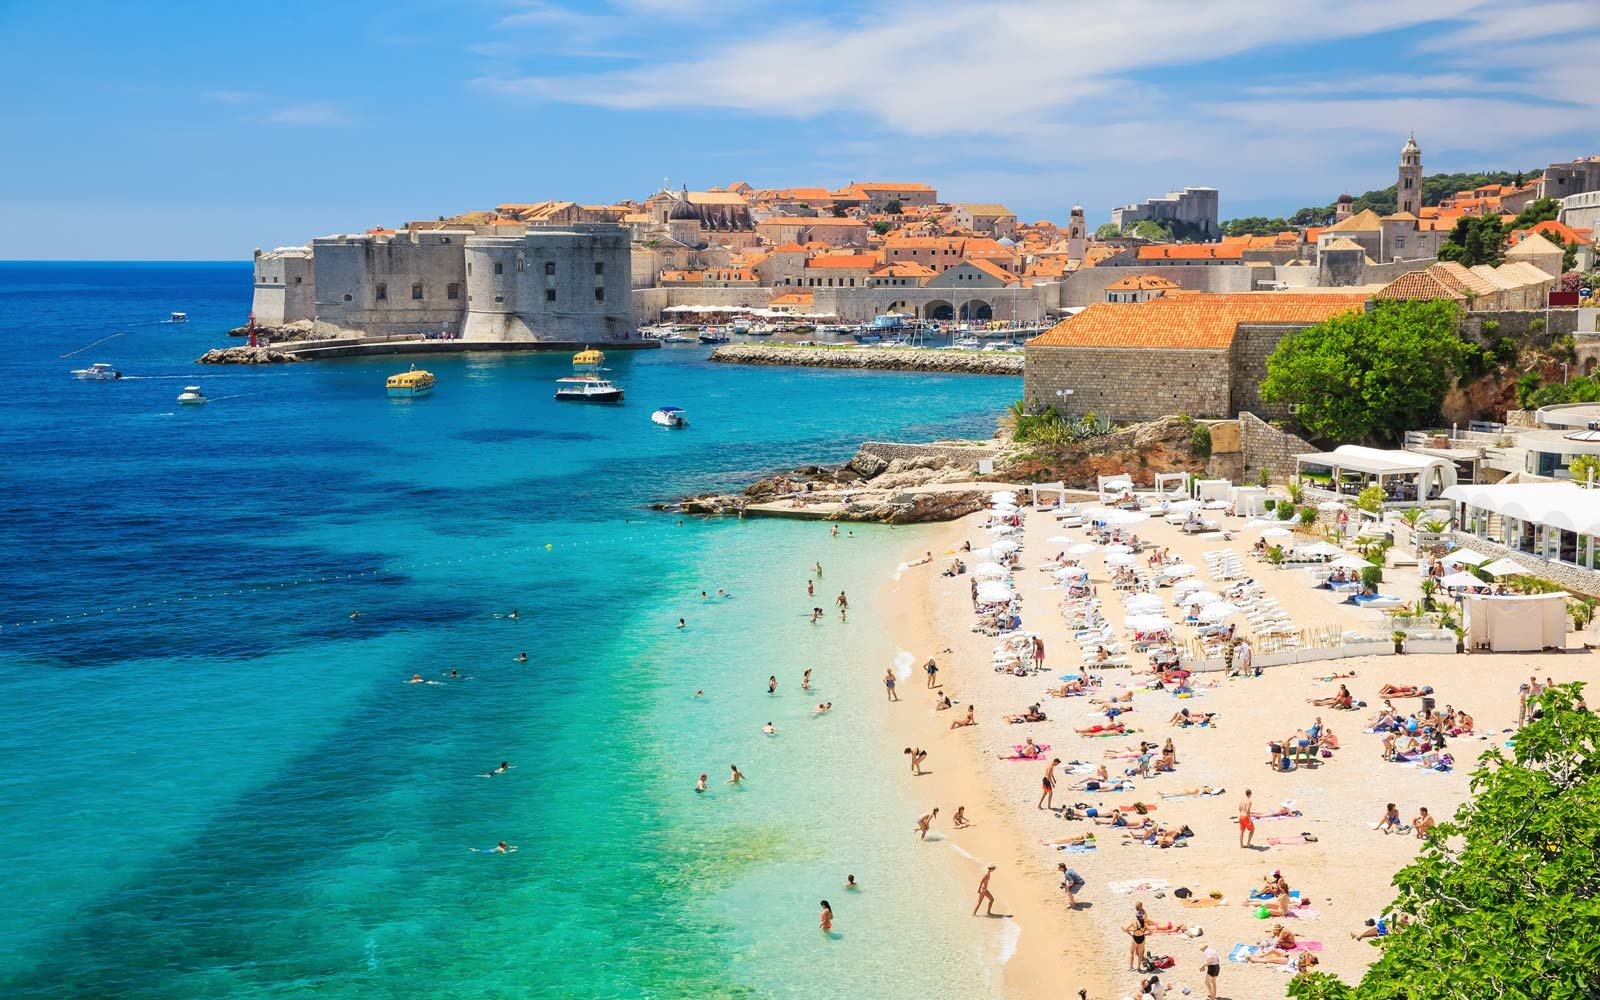 Holiday destinations in europe for couples